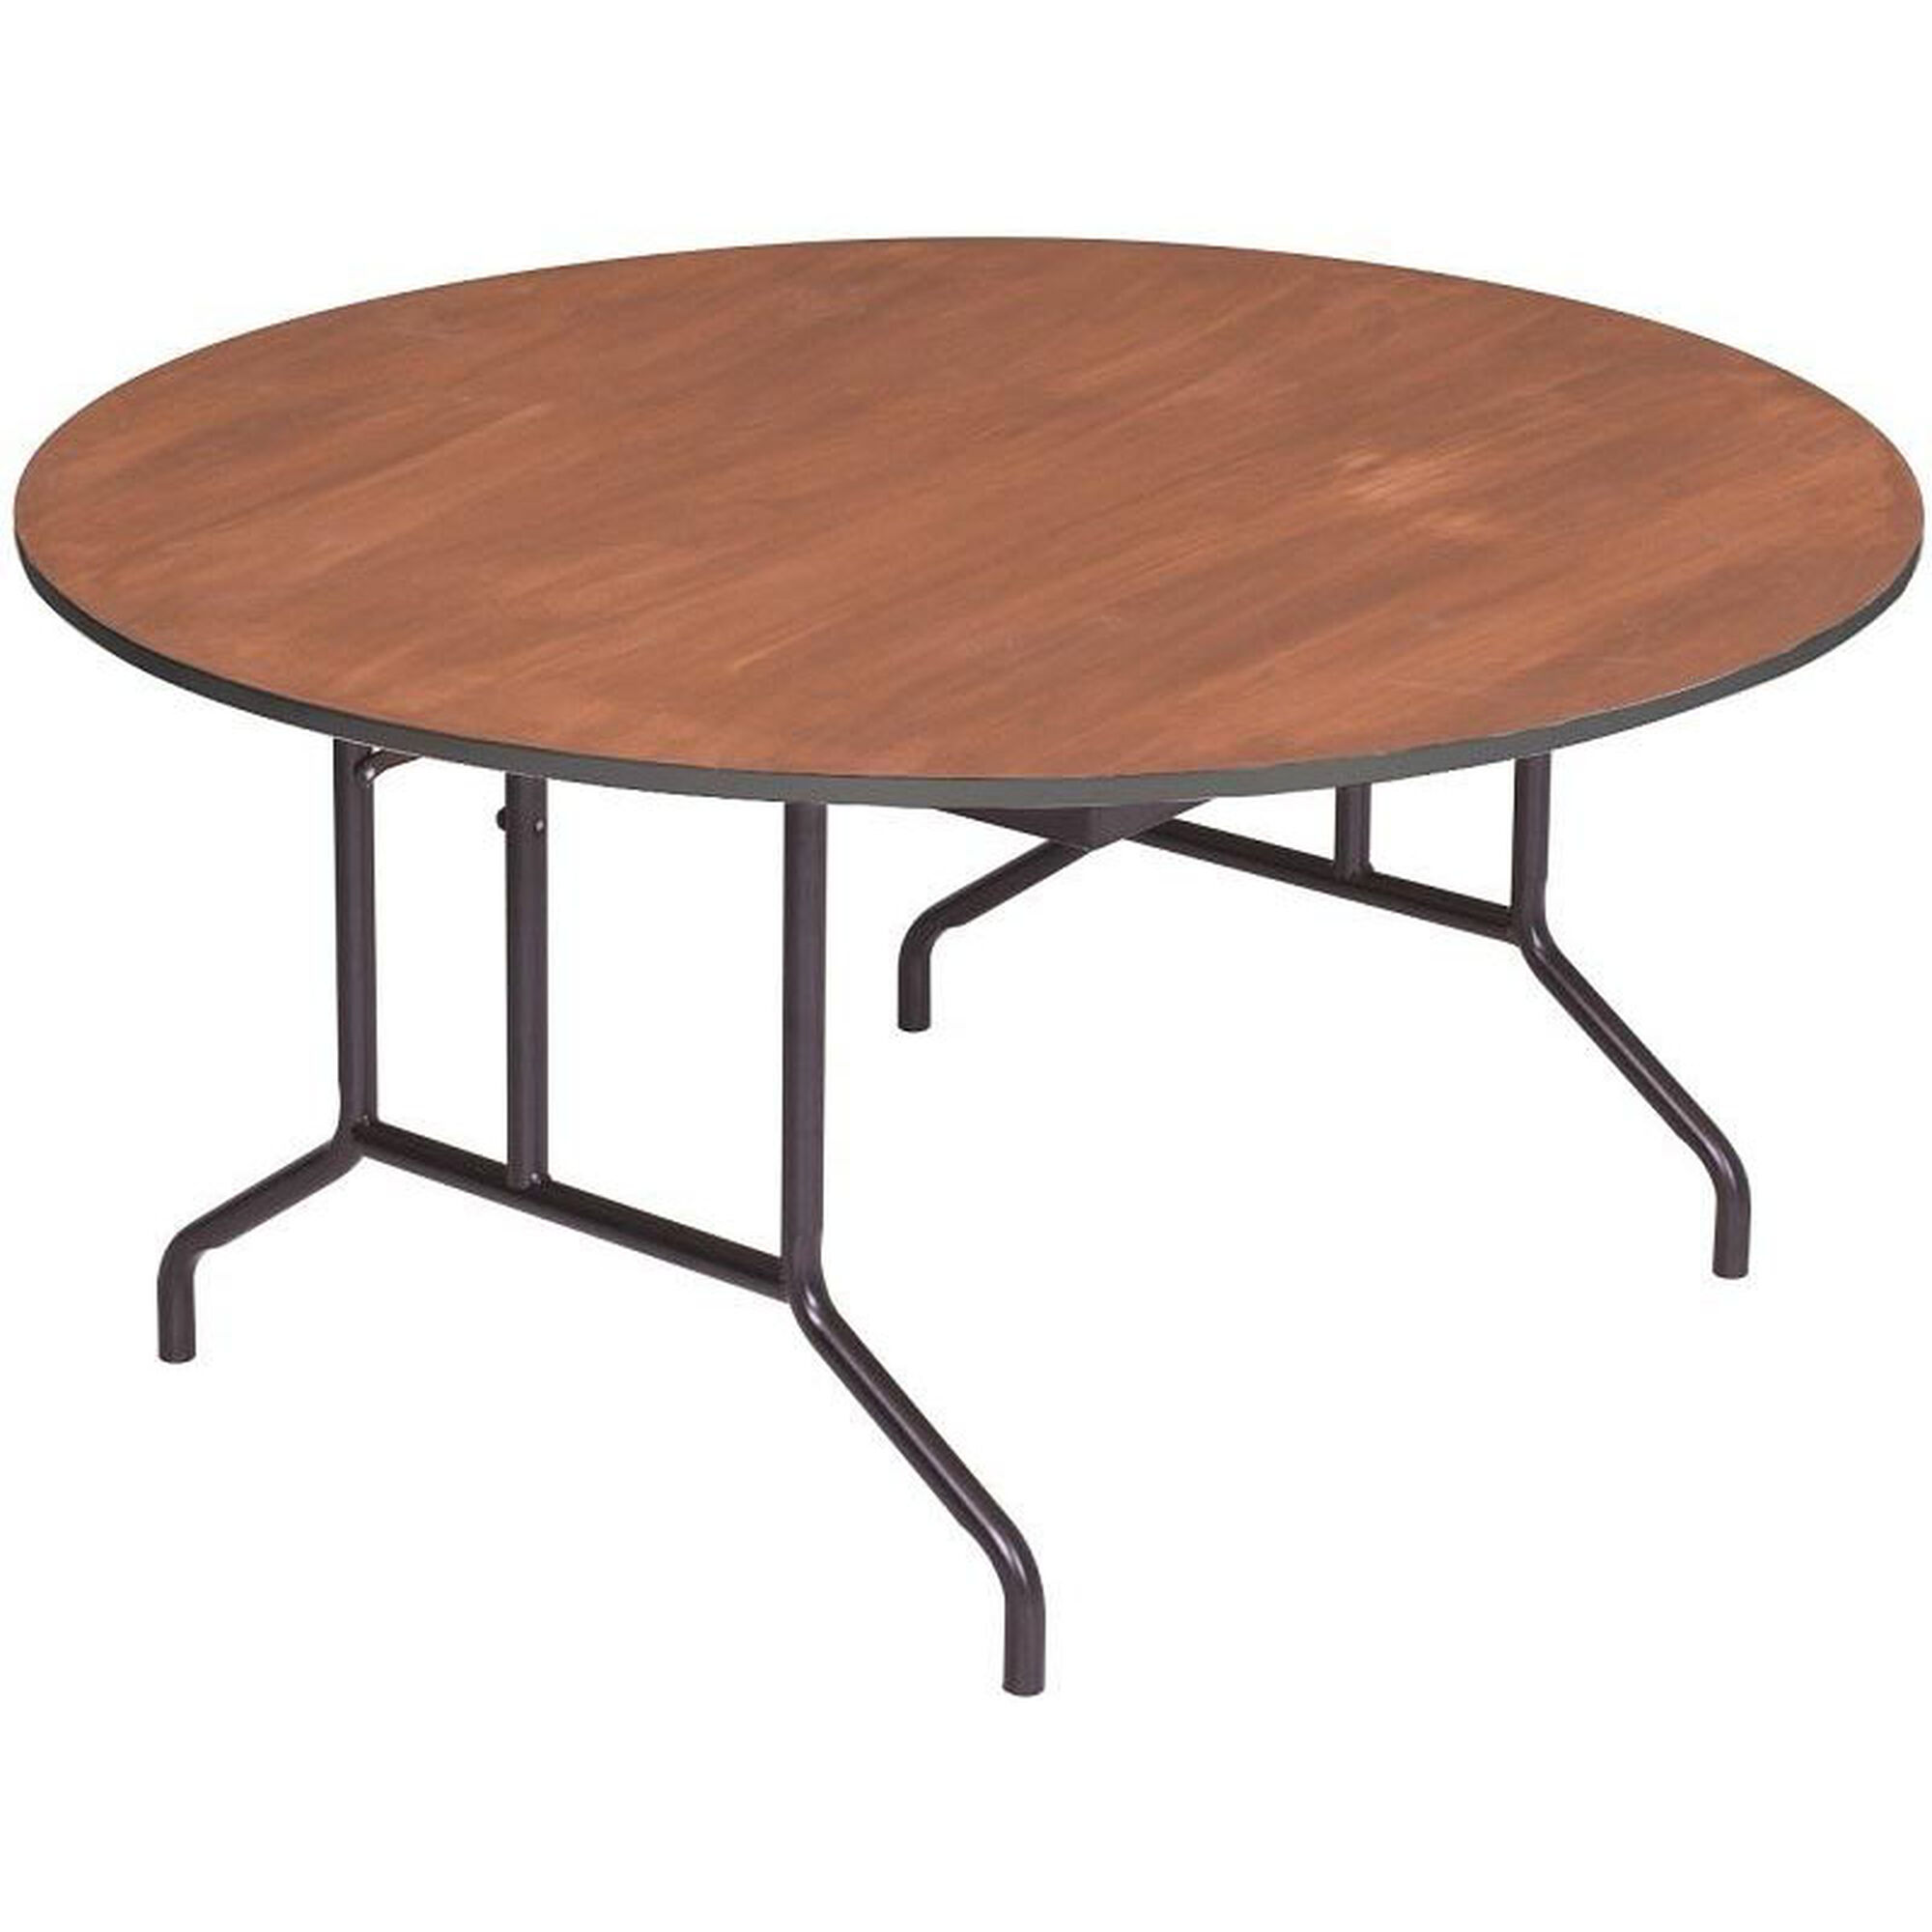 Round Sealed And Stained Plywood Top Table With Vinyl T Molding Edge 60 Diameter X 29 H